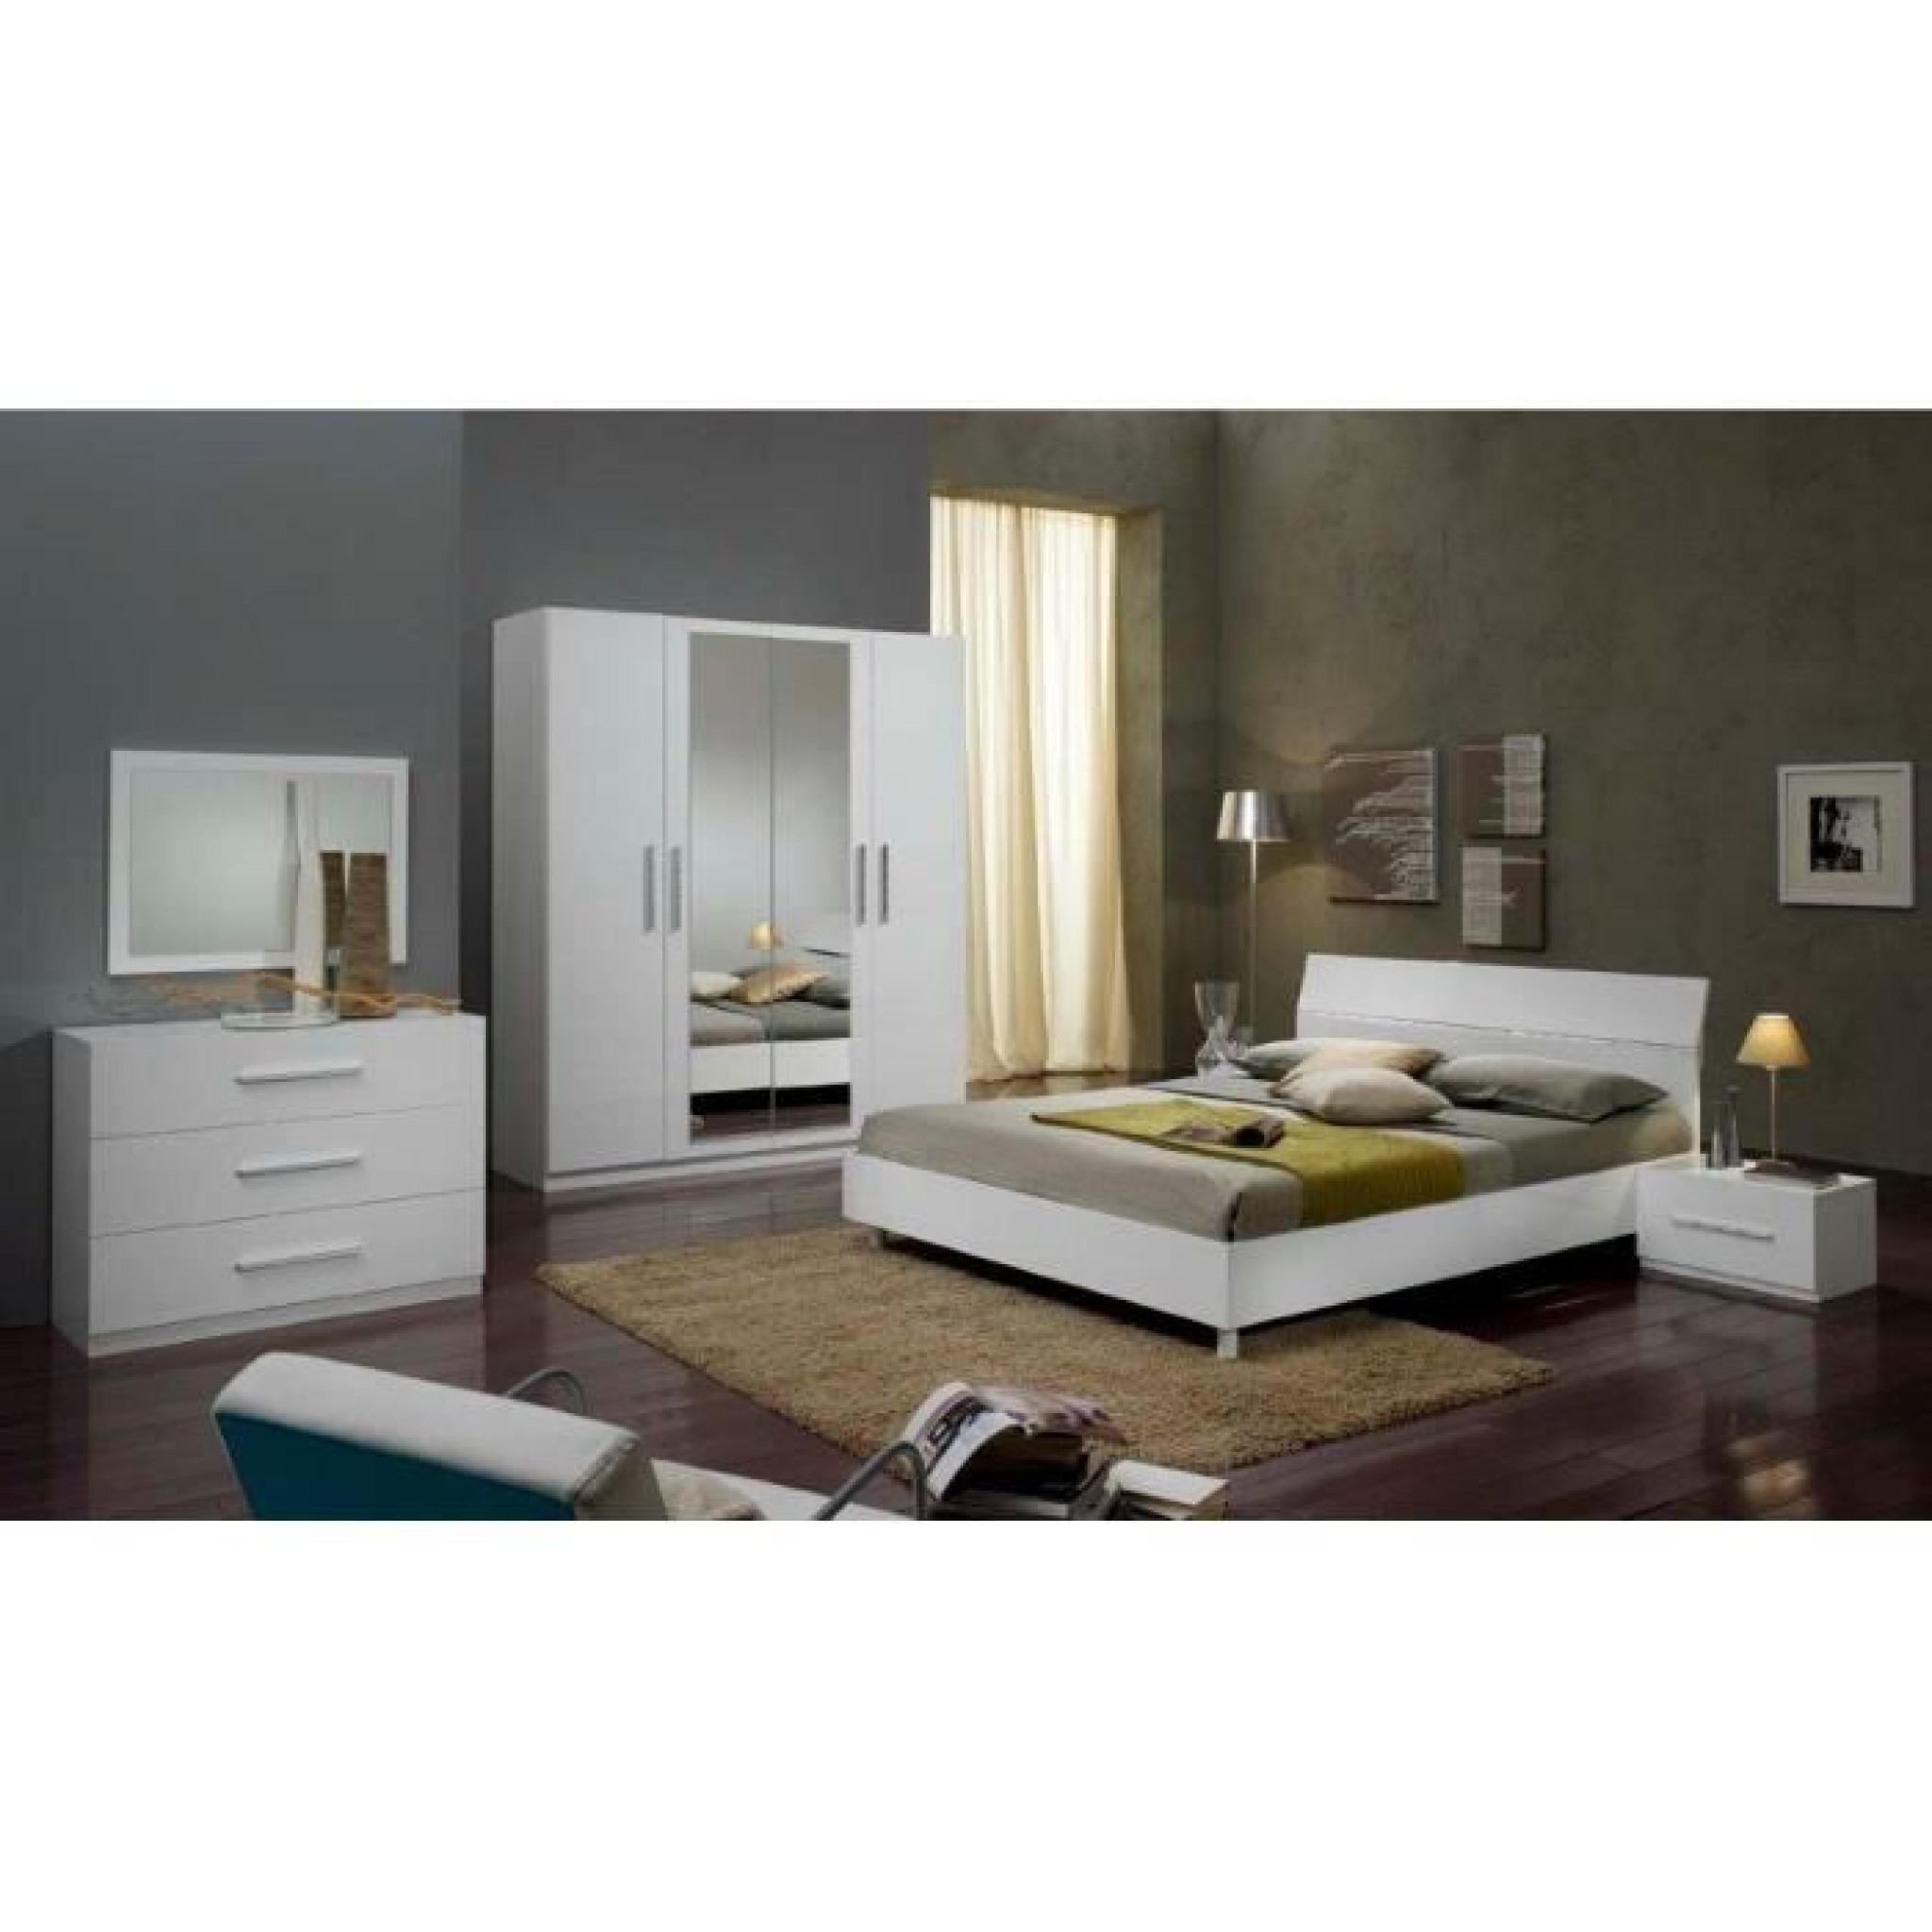 modele de chambre a coucher 2016. Black Bedroom Furniture Sets. Home Design Ideas